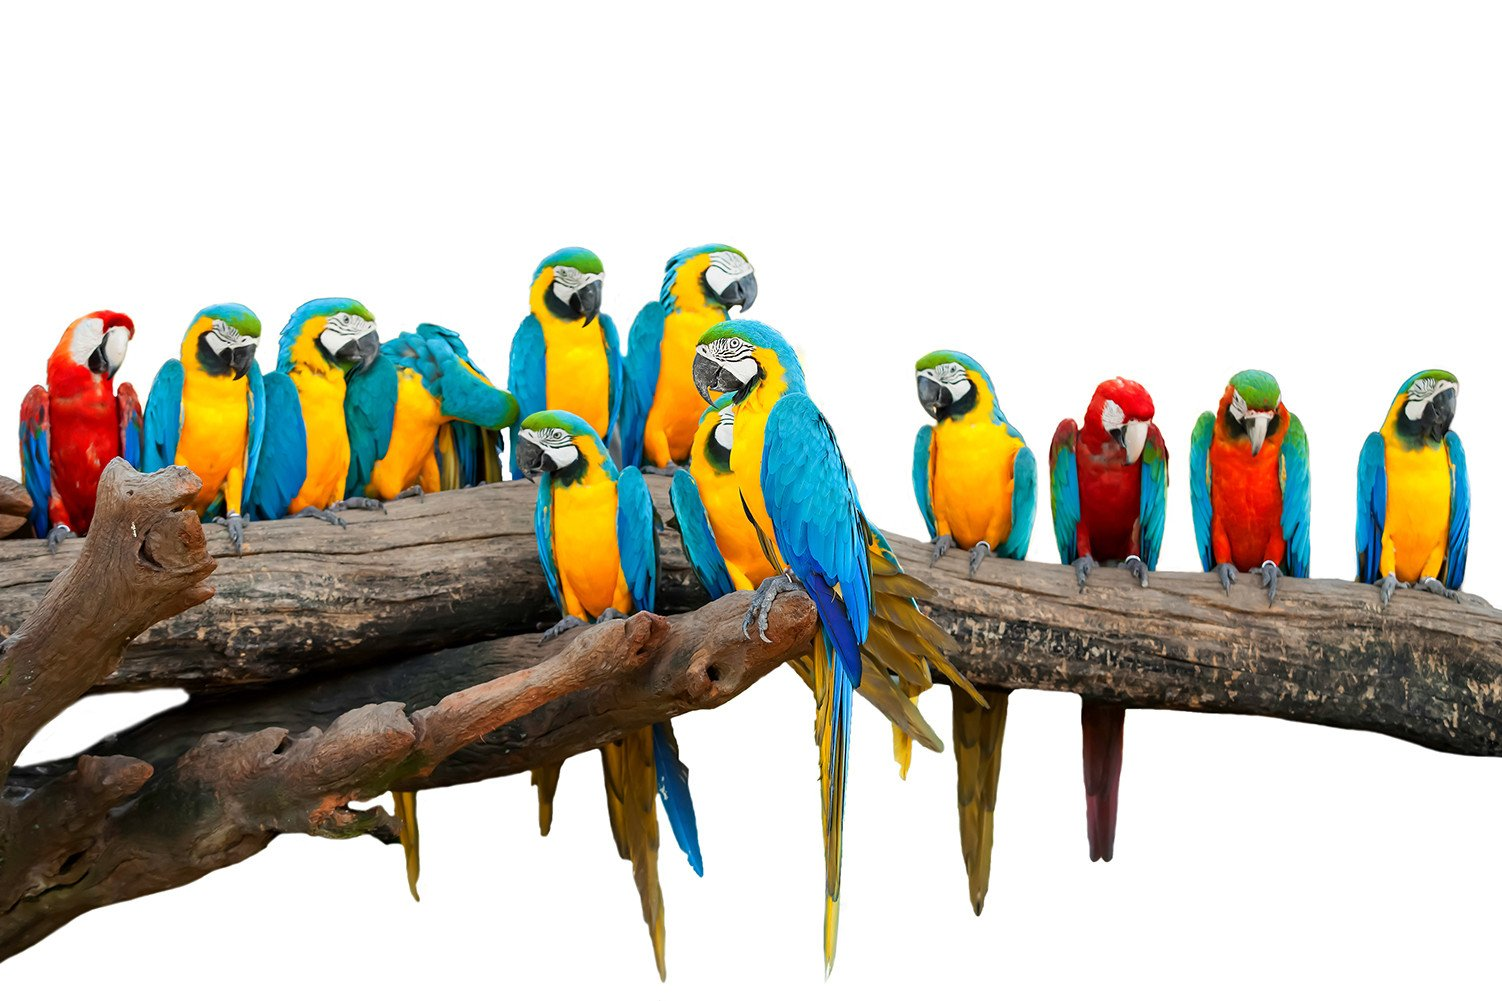 CHOIS Custom Films CF3335 Animal Parrots Birds Glass Window Frosted DIY Stickers 4' W by 3' H